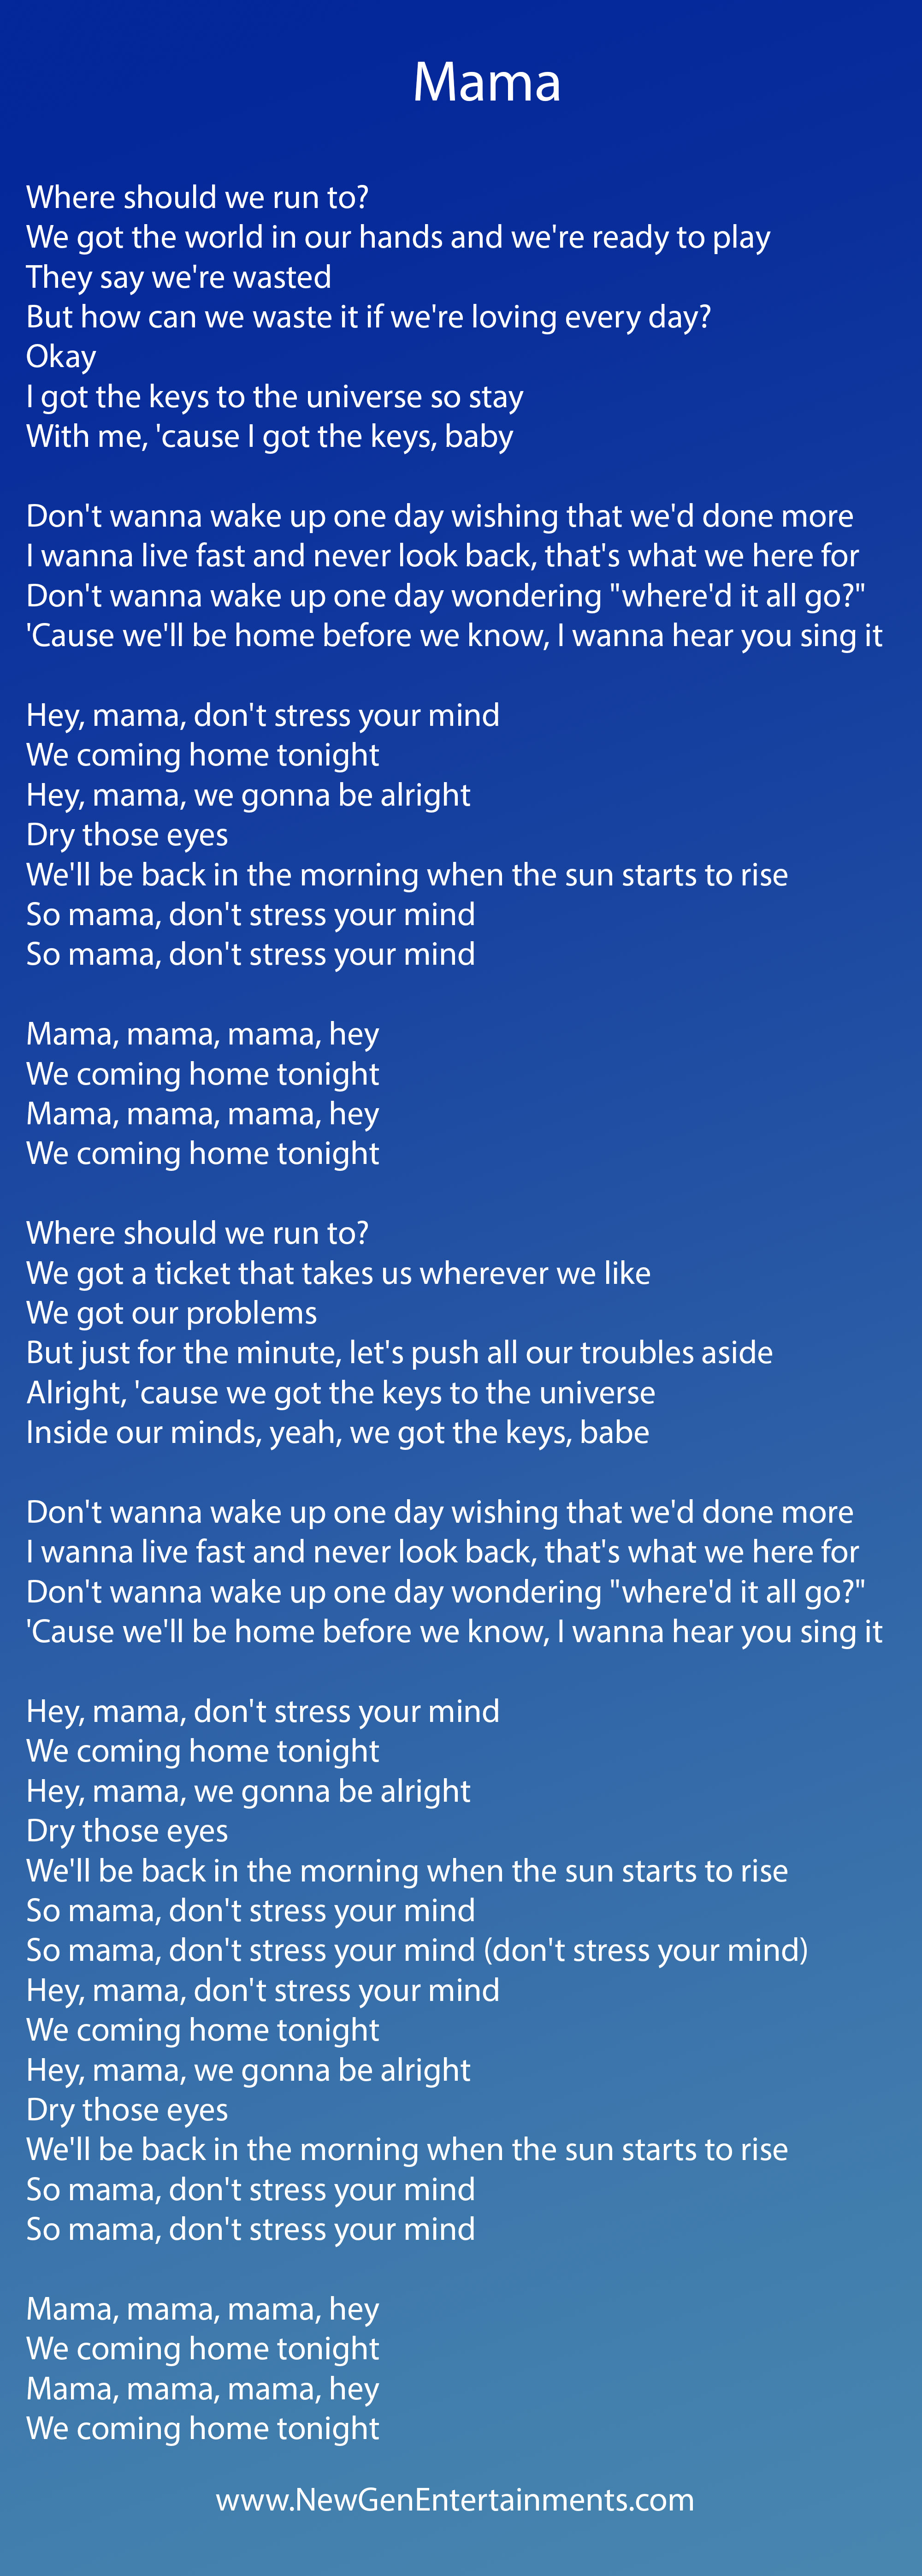 Mama | Lyrics | Jonas Blue – New Gen Entertainments